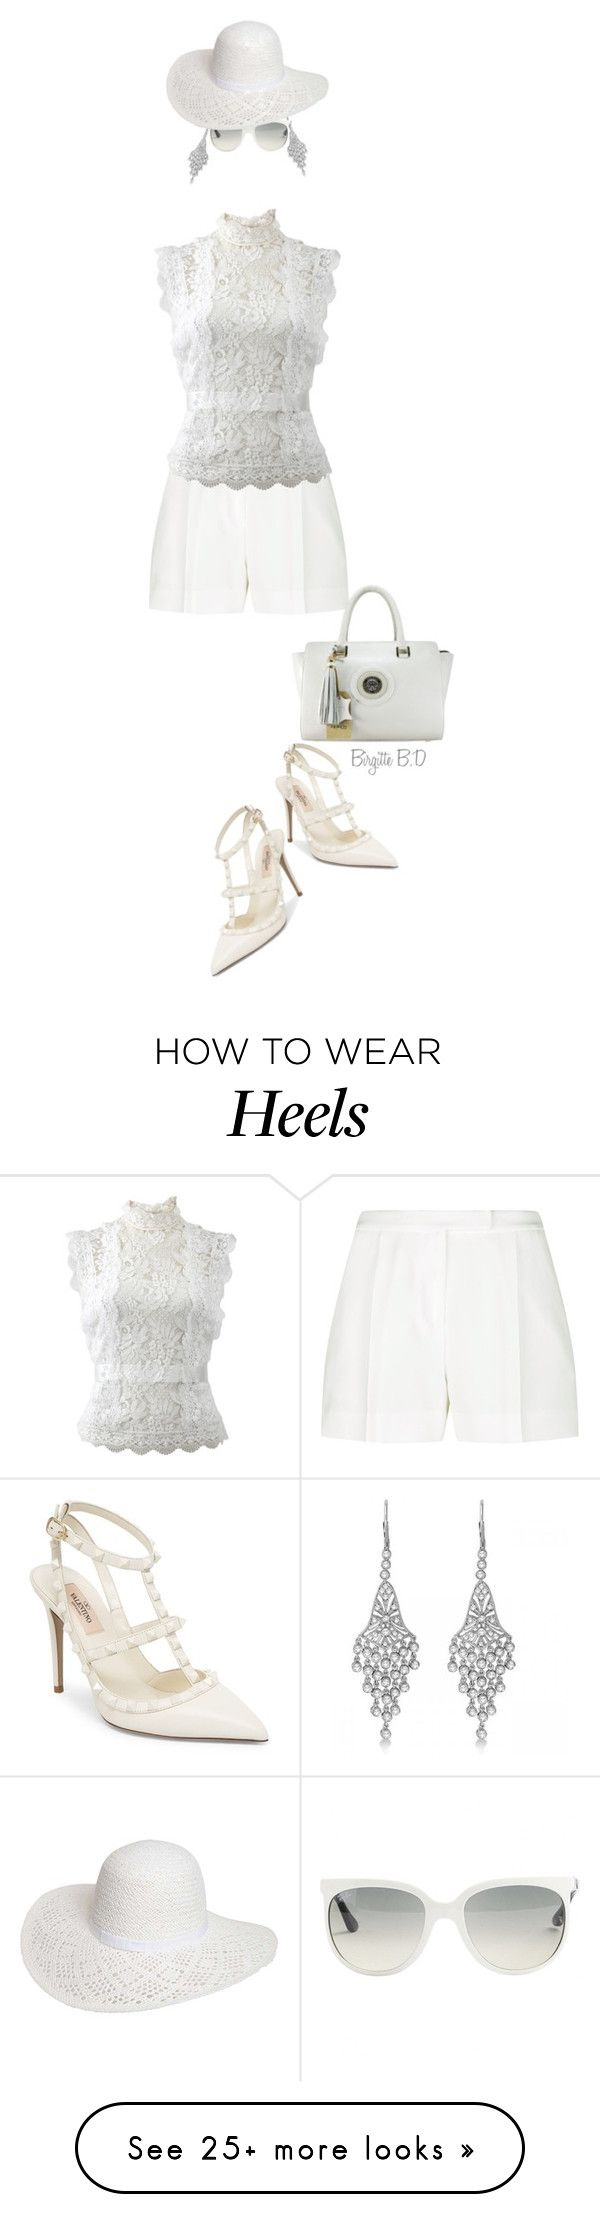 """""""The White Shirt & Shorts with Heels!"""" by birgitte-b-d on Polyvore featuring Elie Saab, Oscar de la Renta, Allurez, Valentino, Ray-Ban and Dorothy Perkins"""